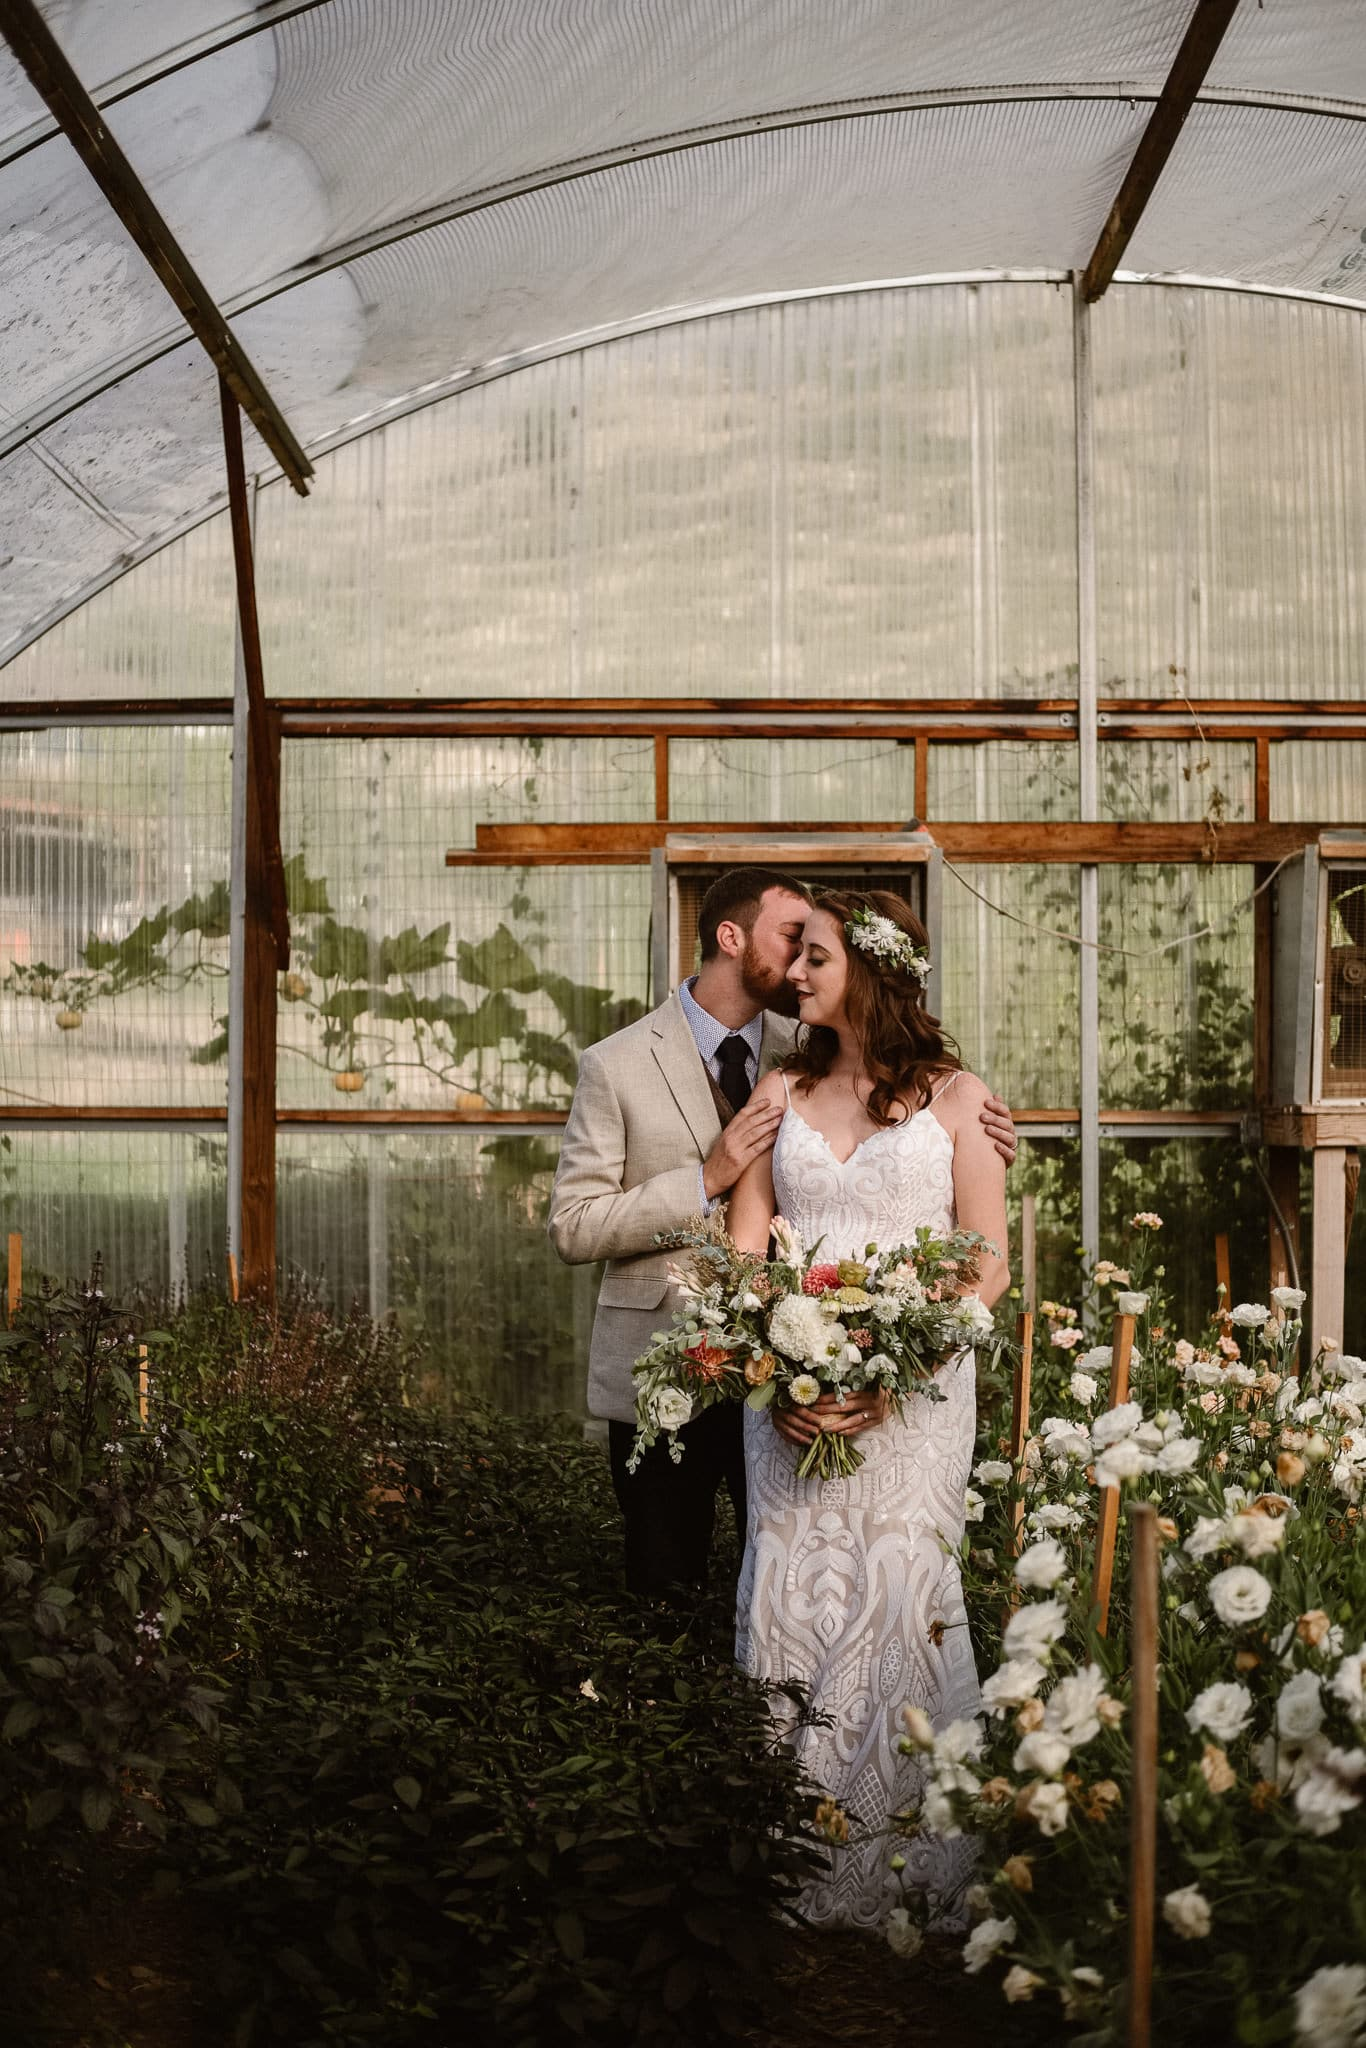 Lyons Farmette wedding photographer, Colorado intimate wedding photographer, bride and groom photos in greenhouse